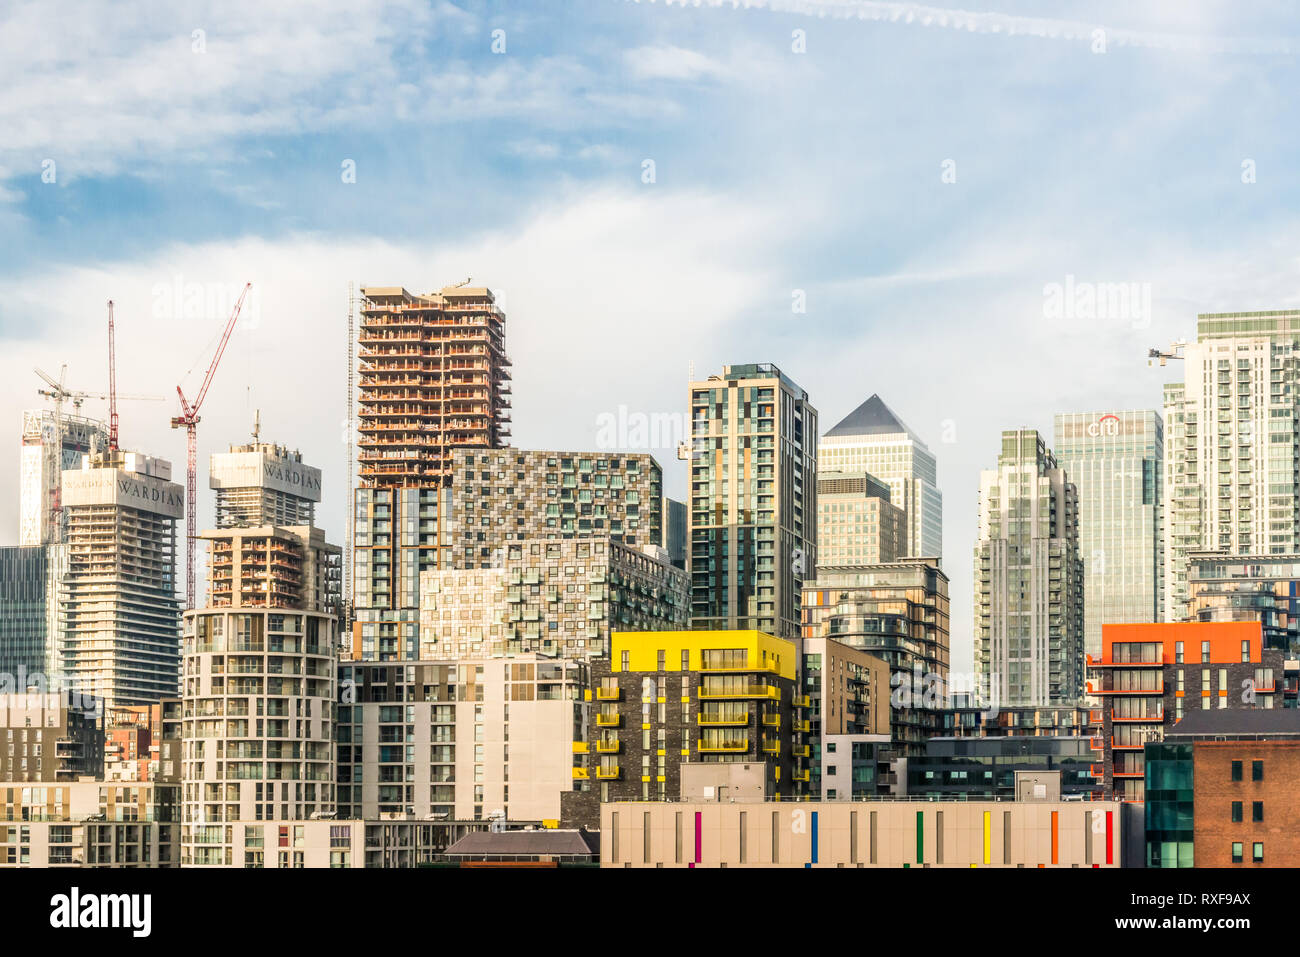 London, United Kingdom - November 07, 2018: View from Greenwich View Place towards Canary Wharf and new construction - Stock Image